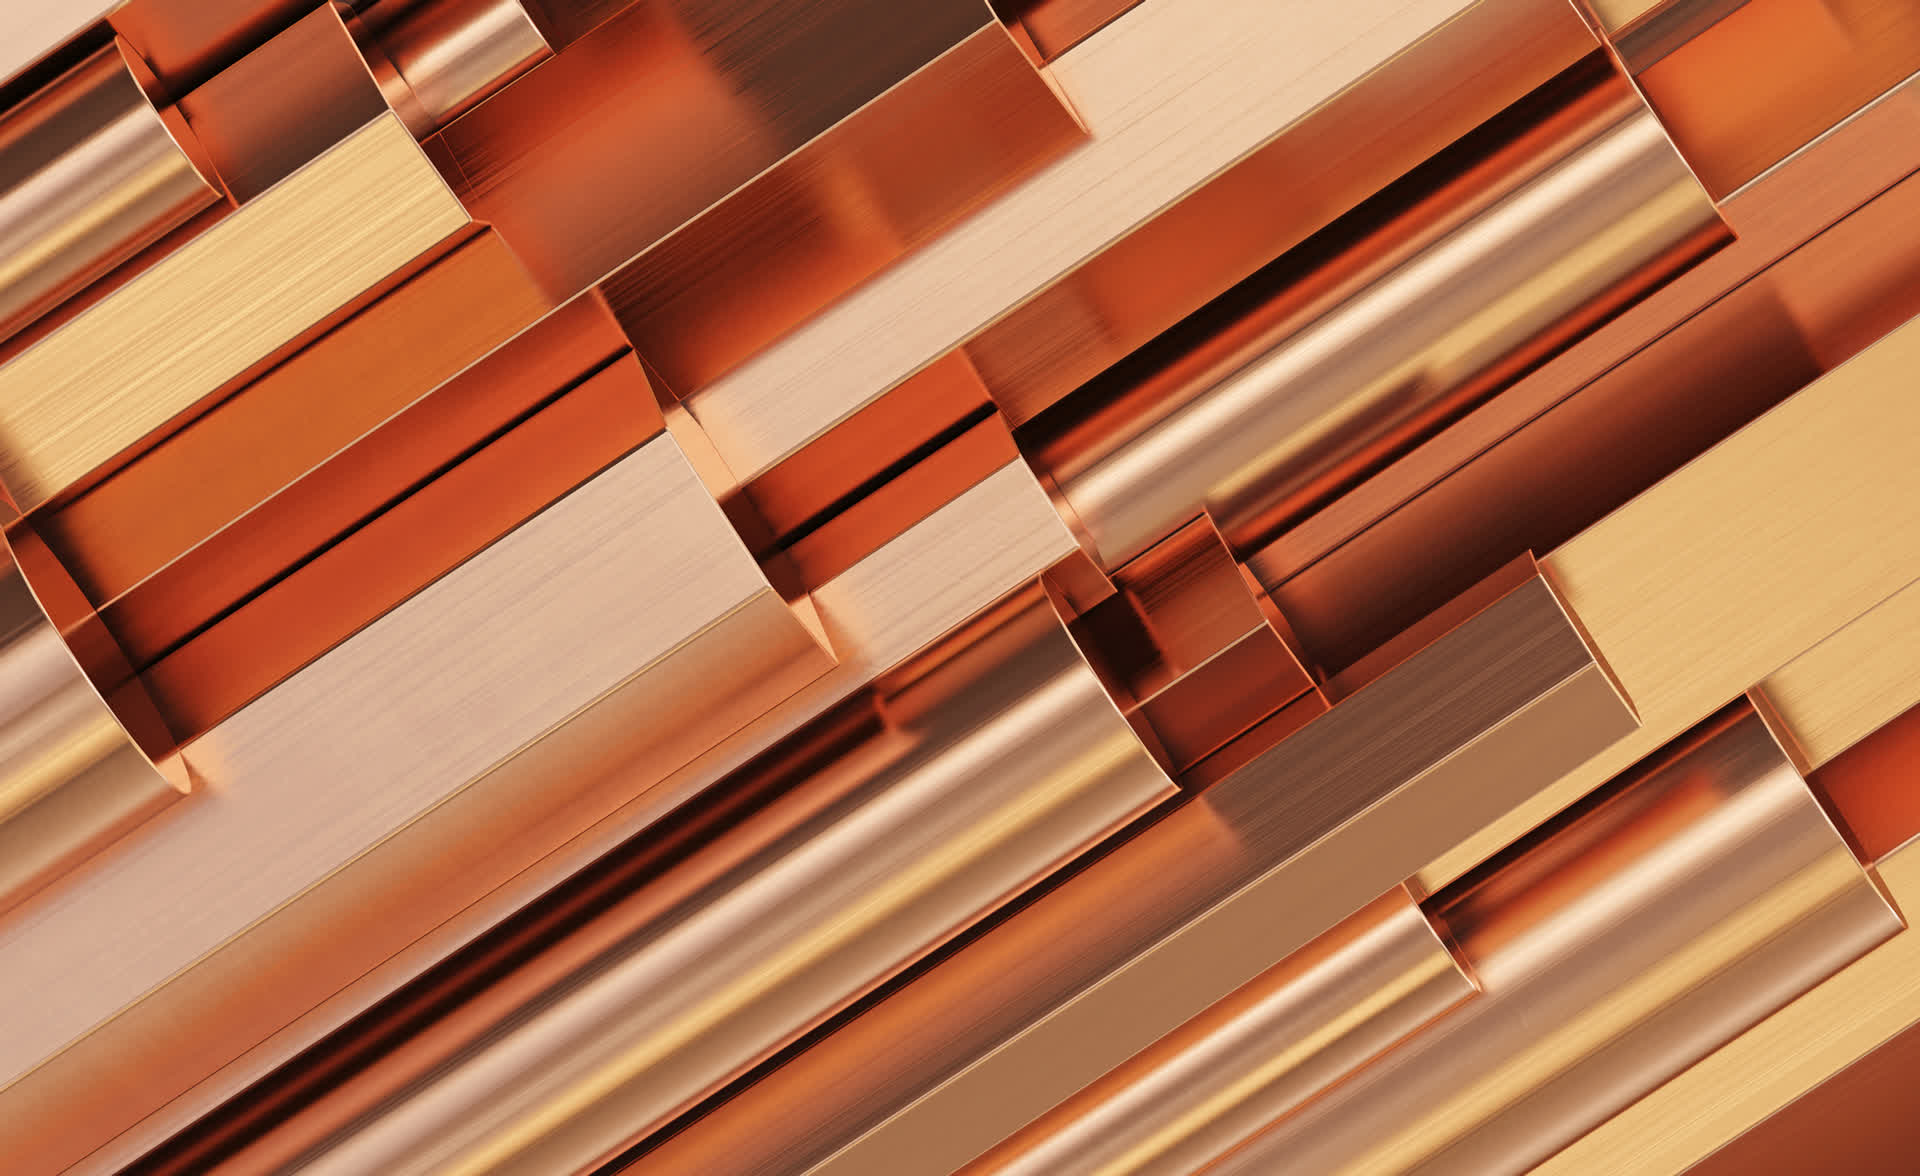 Copper foil shortage could force motherboard and GPU prices higher